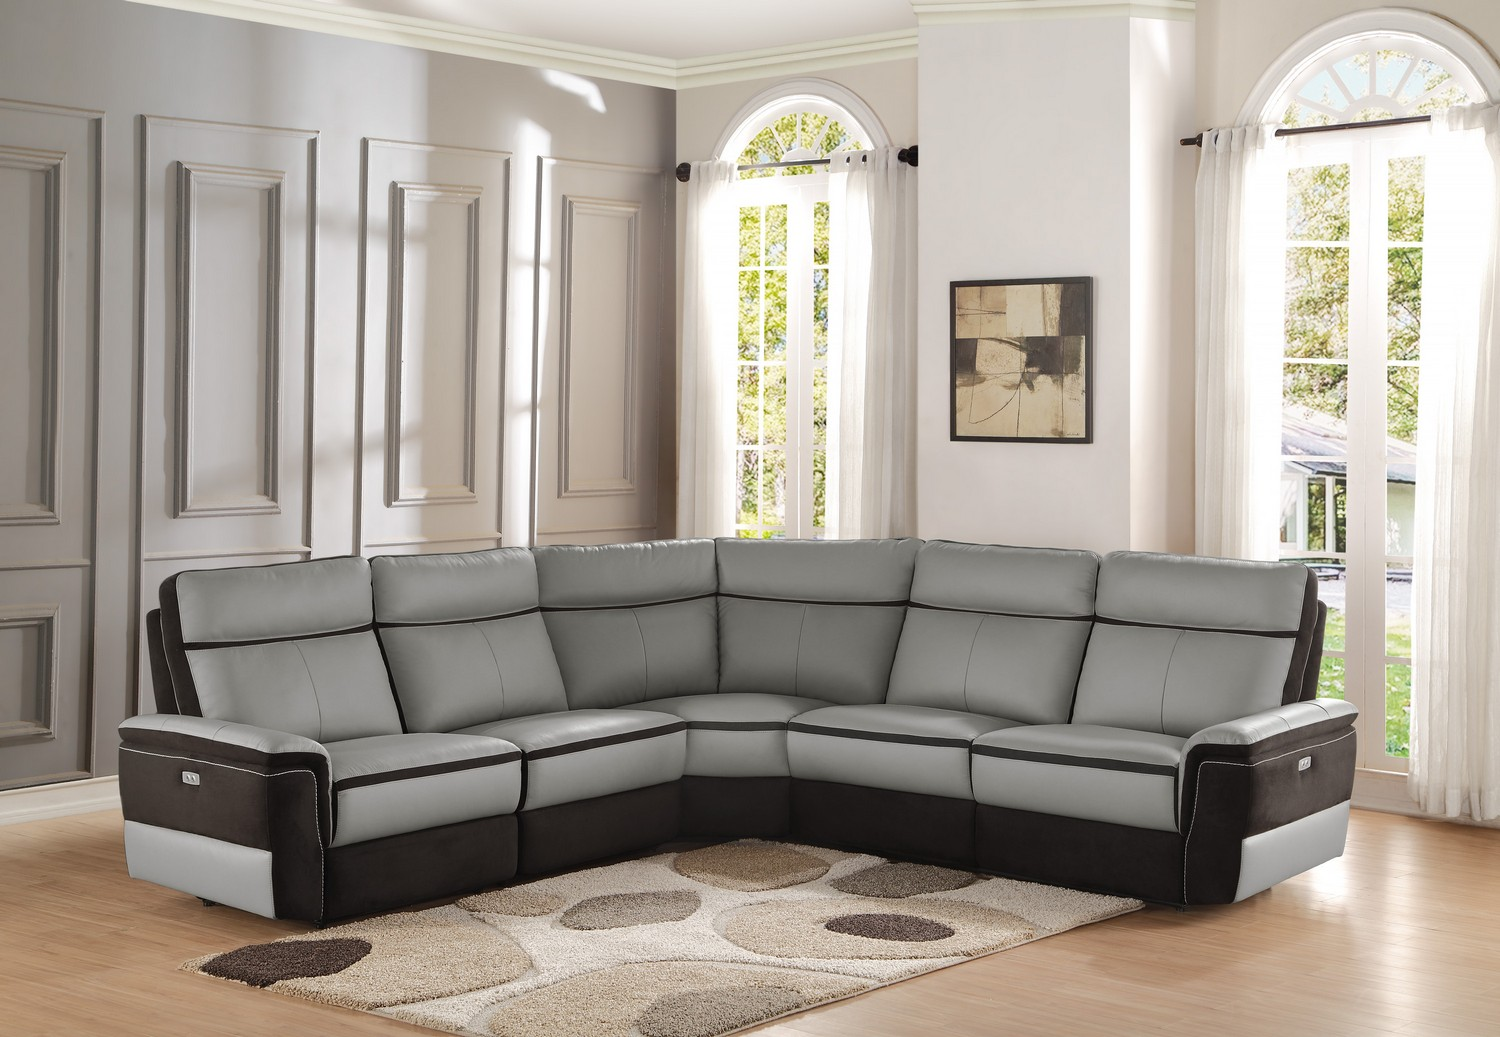 Homelegance Laertes Power Reclining Sectional Sofa Set